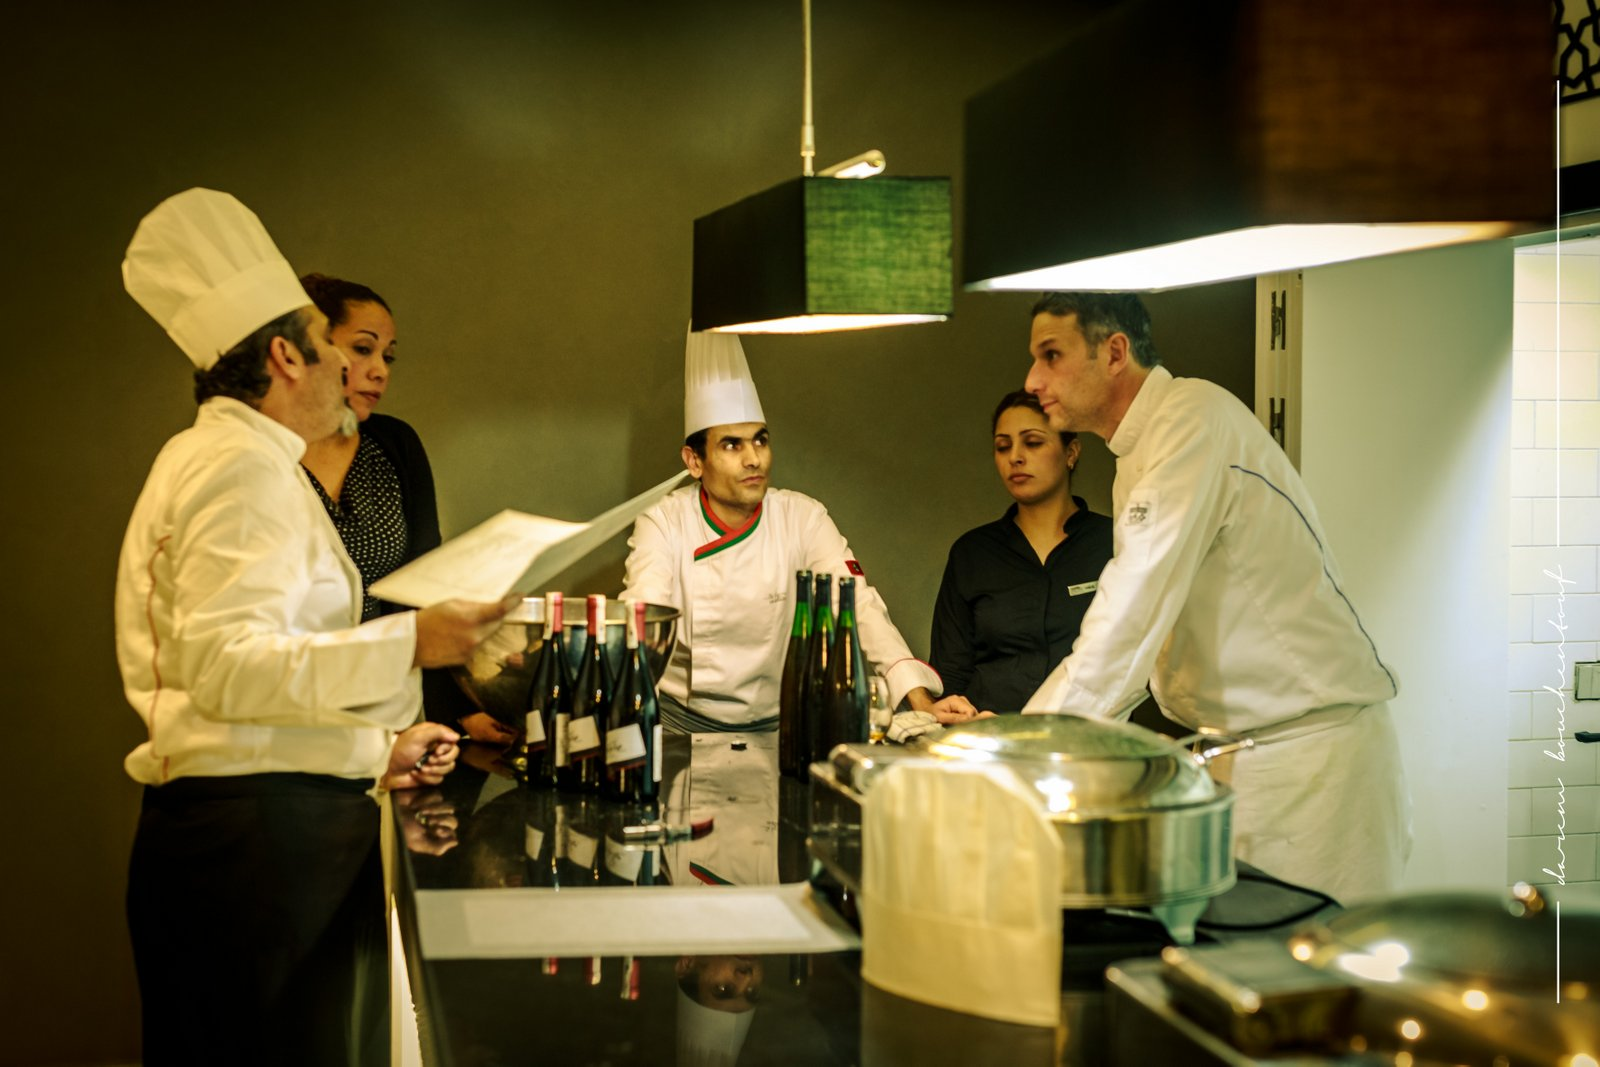 Diner de chef – Culture & Gastronomie